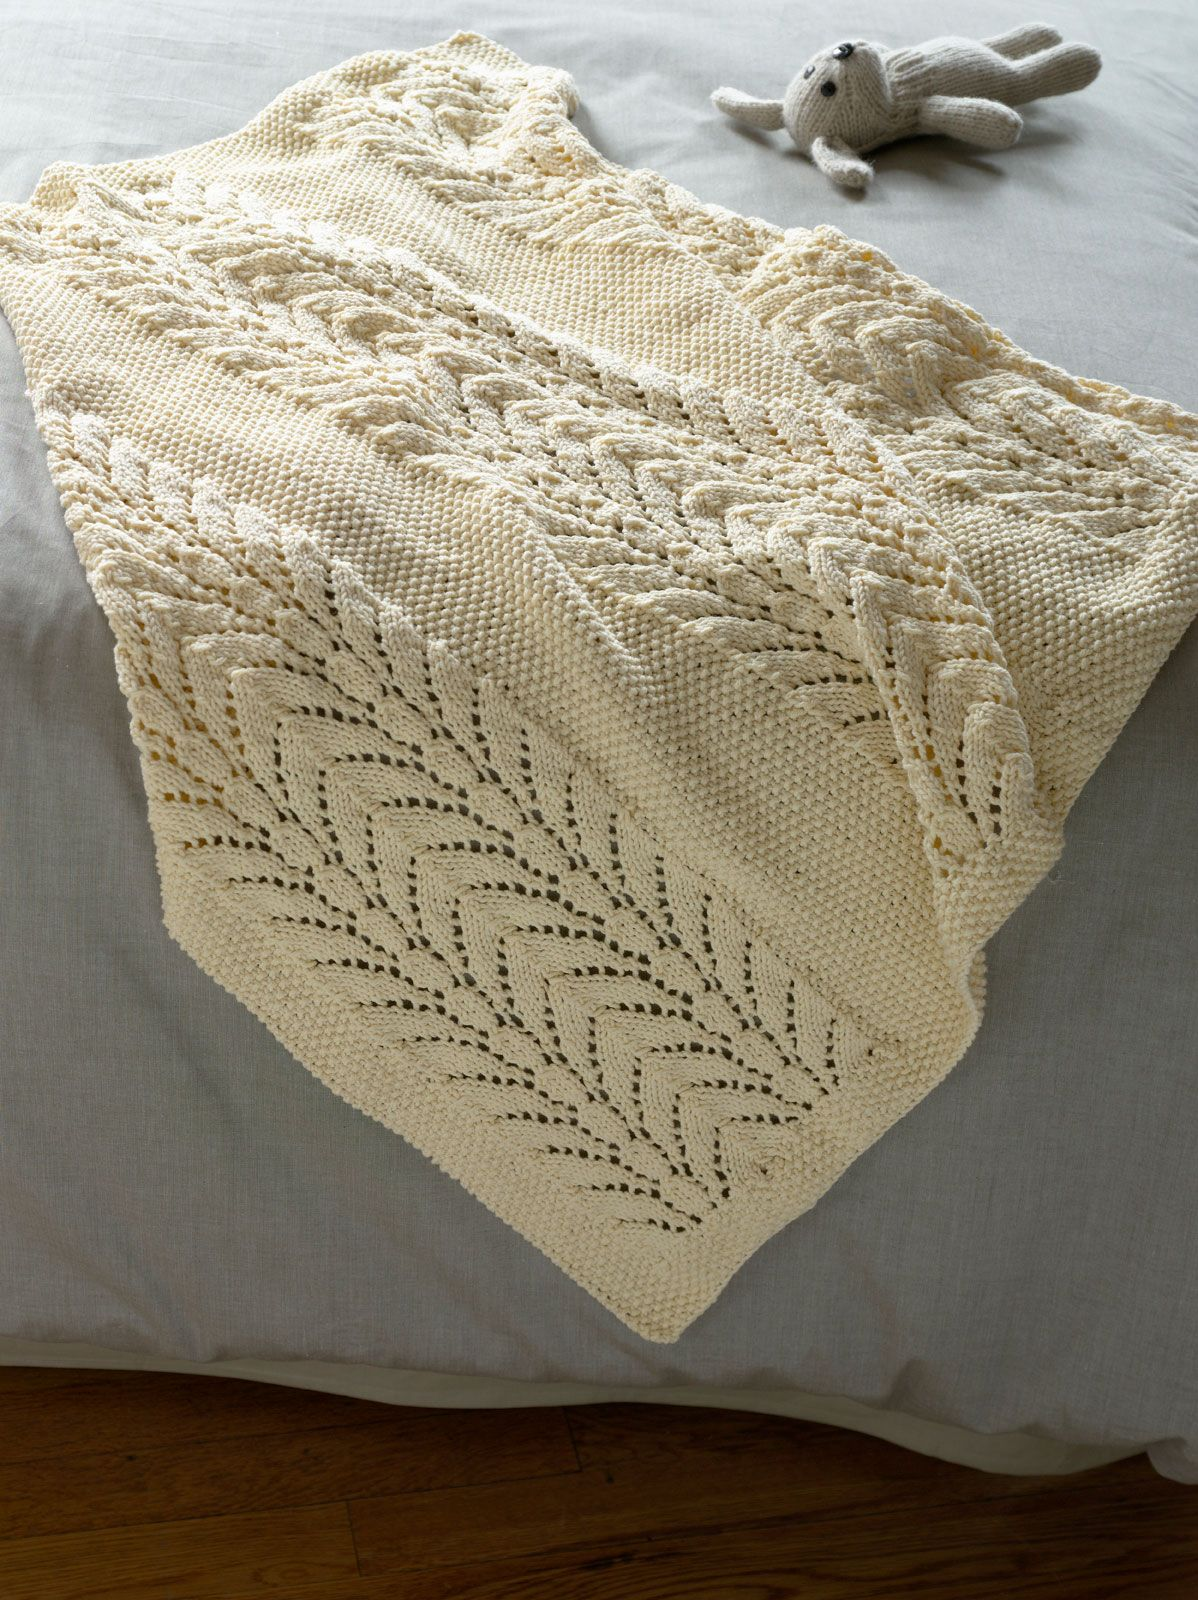 Lion Brand Patterns Knitting : Lace knit baby blanket - Free pattern via Lion Brand Yarn CRAFTS y mas, tex...